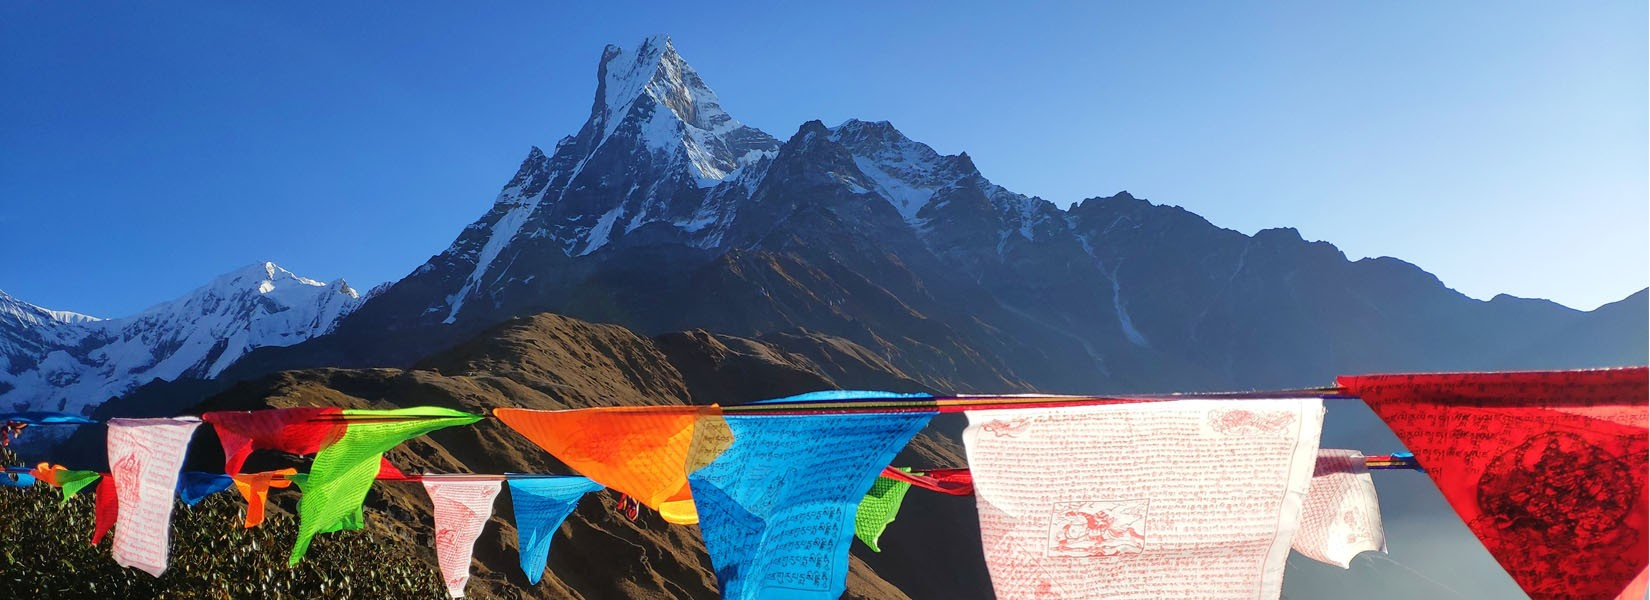 7 Things To Know Before Traveling to Nepal